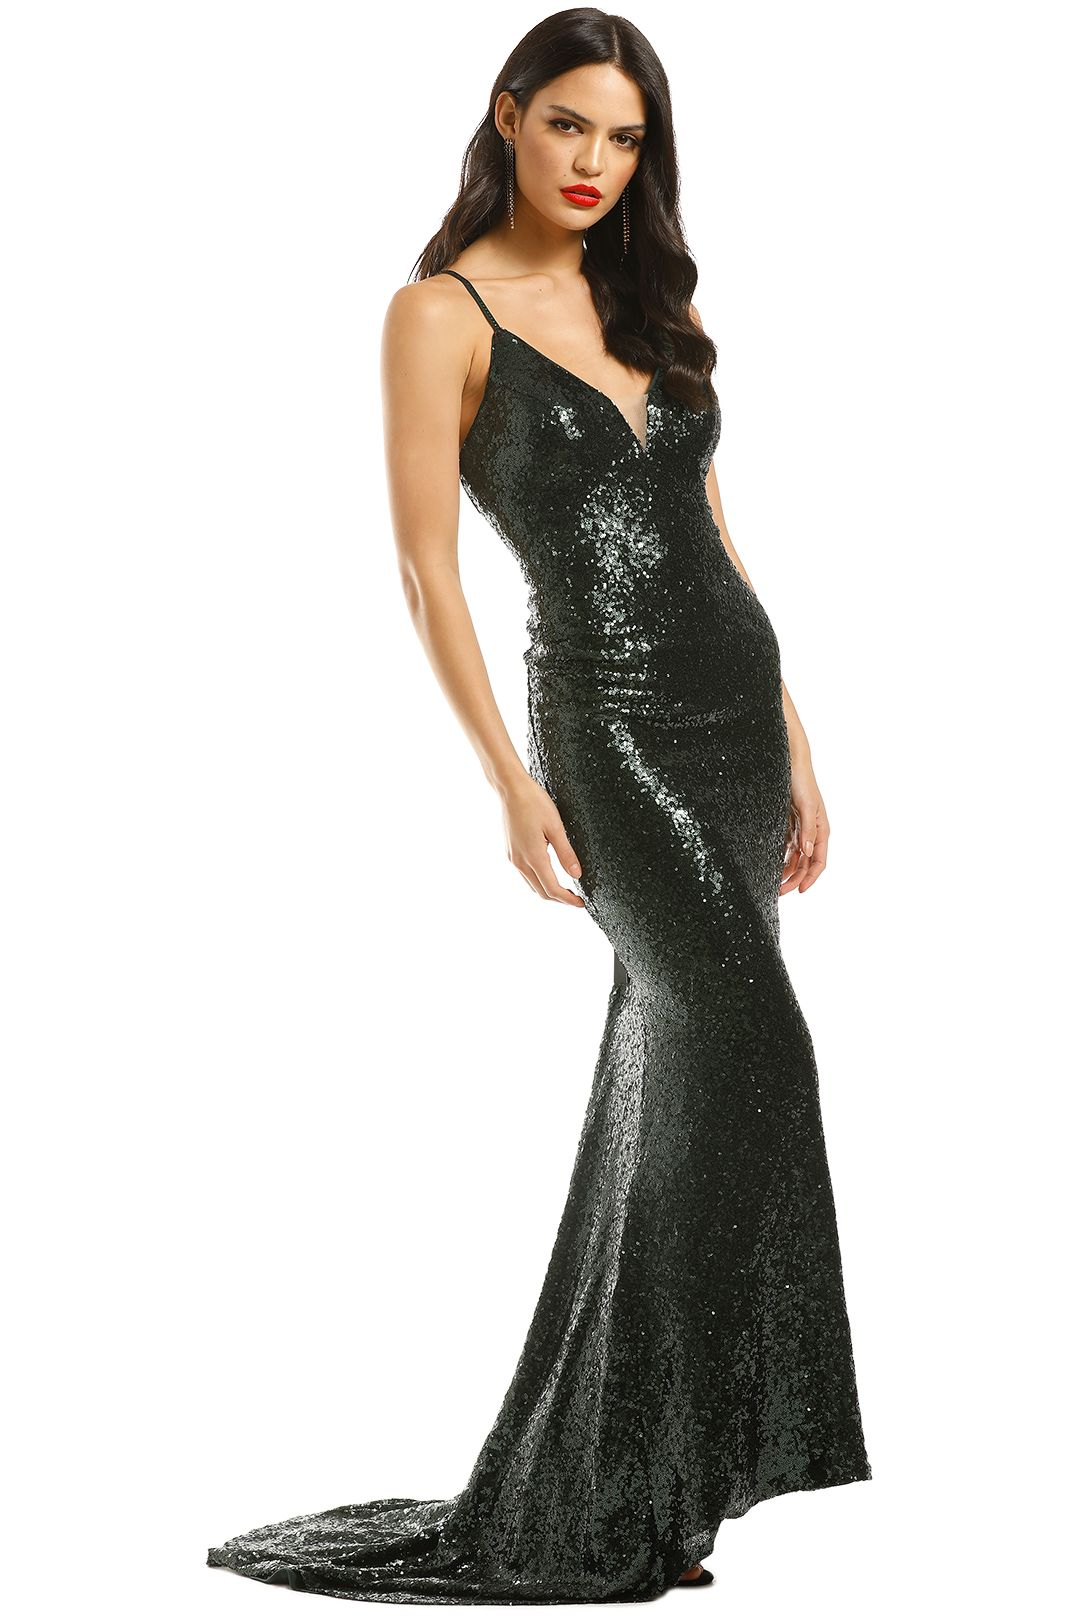 L'amour-Sequin-Plunge-Emerald-Green-Side